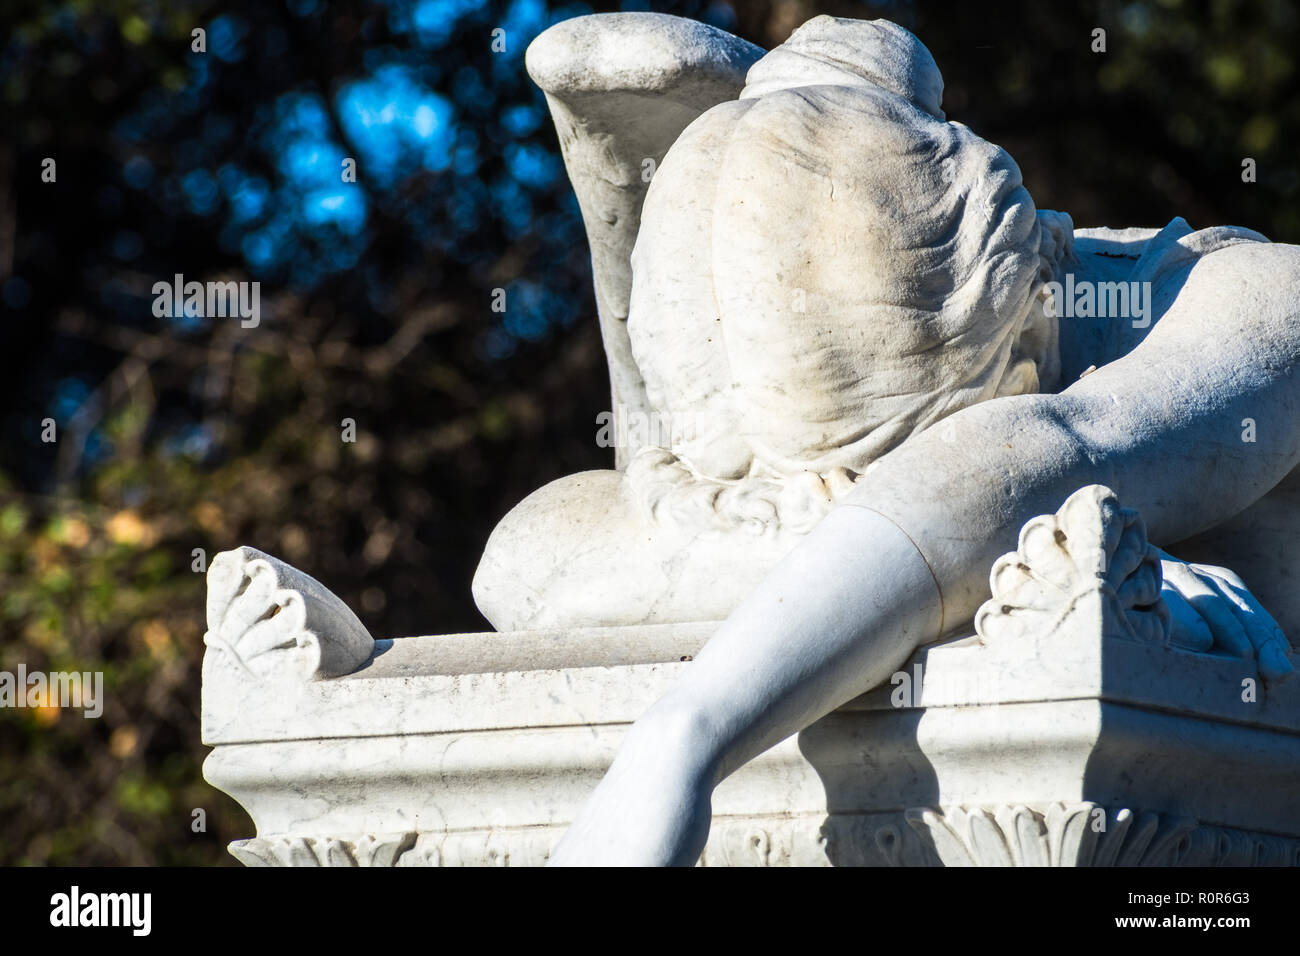 Detail of Weeping angel marble statue located in a public park - Stock Image